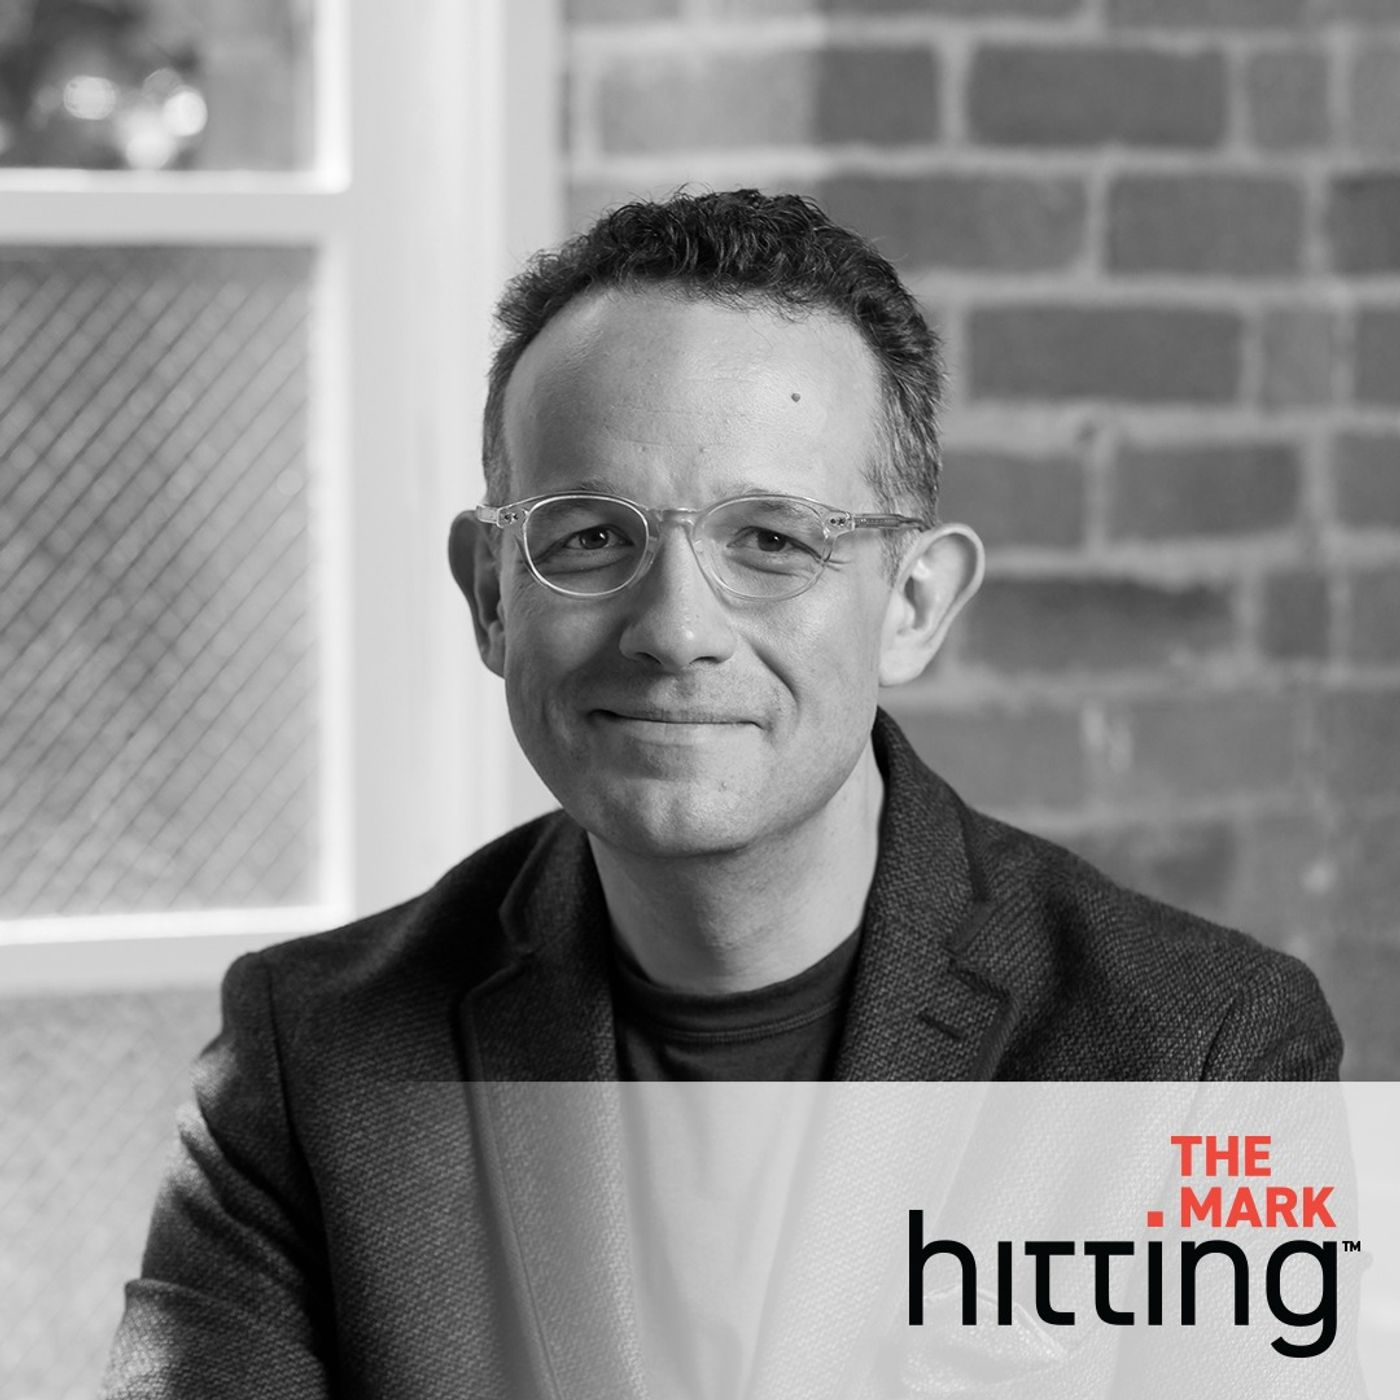 Phil Libin, Co-Founder and CEO, mmhmm and All Turtles; Co-Founder and former CEO, Evernote